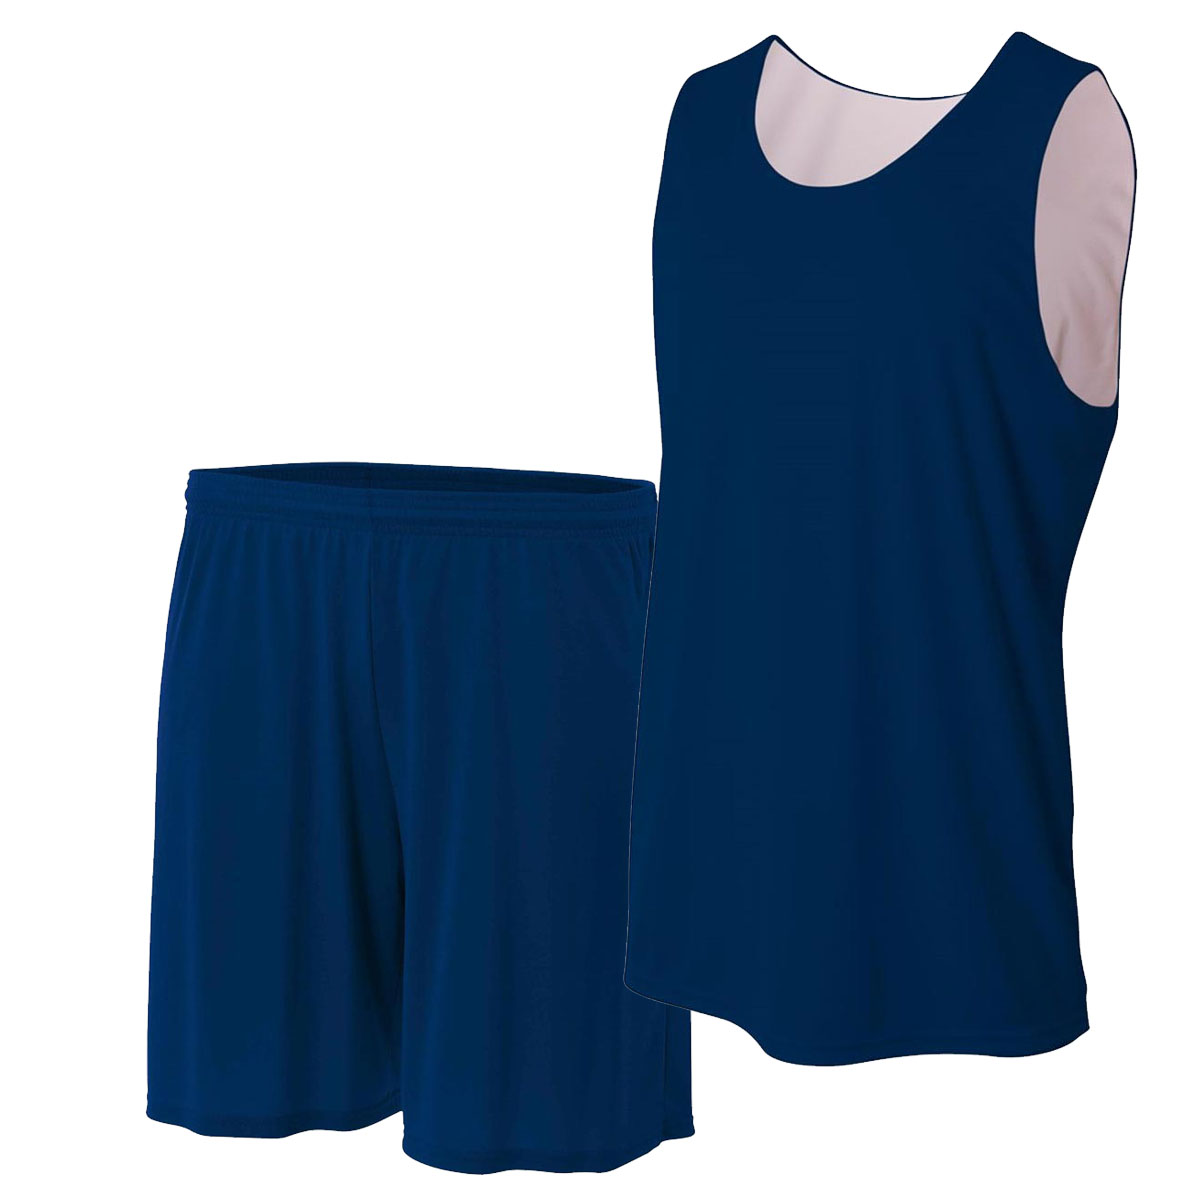 Reversible Basketball Uniforms Manufacturers in Thiruvananthapuram